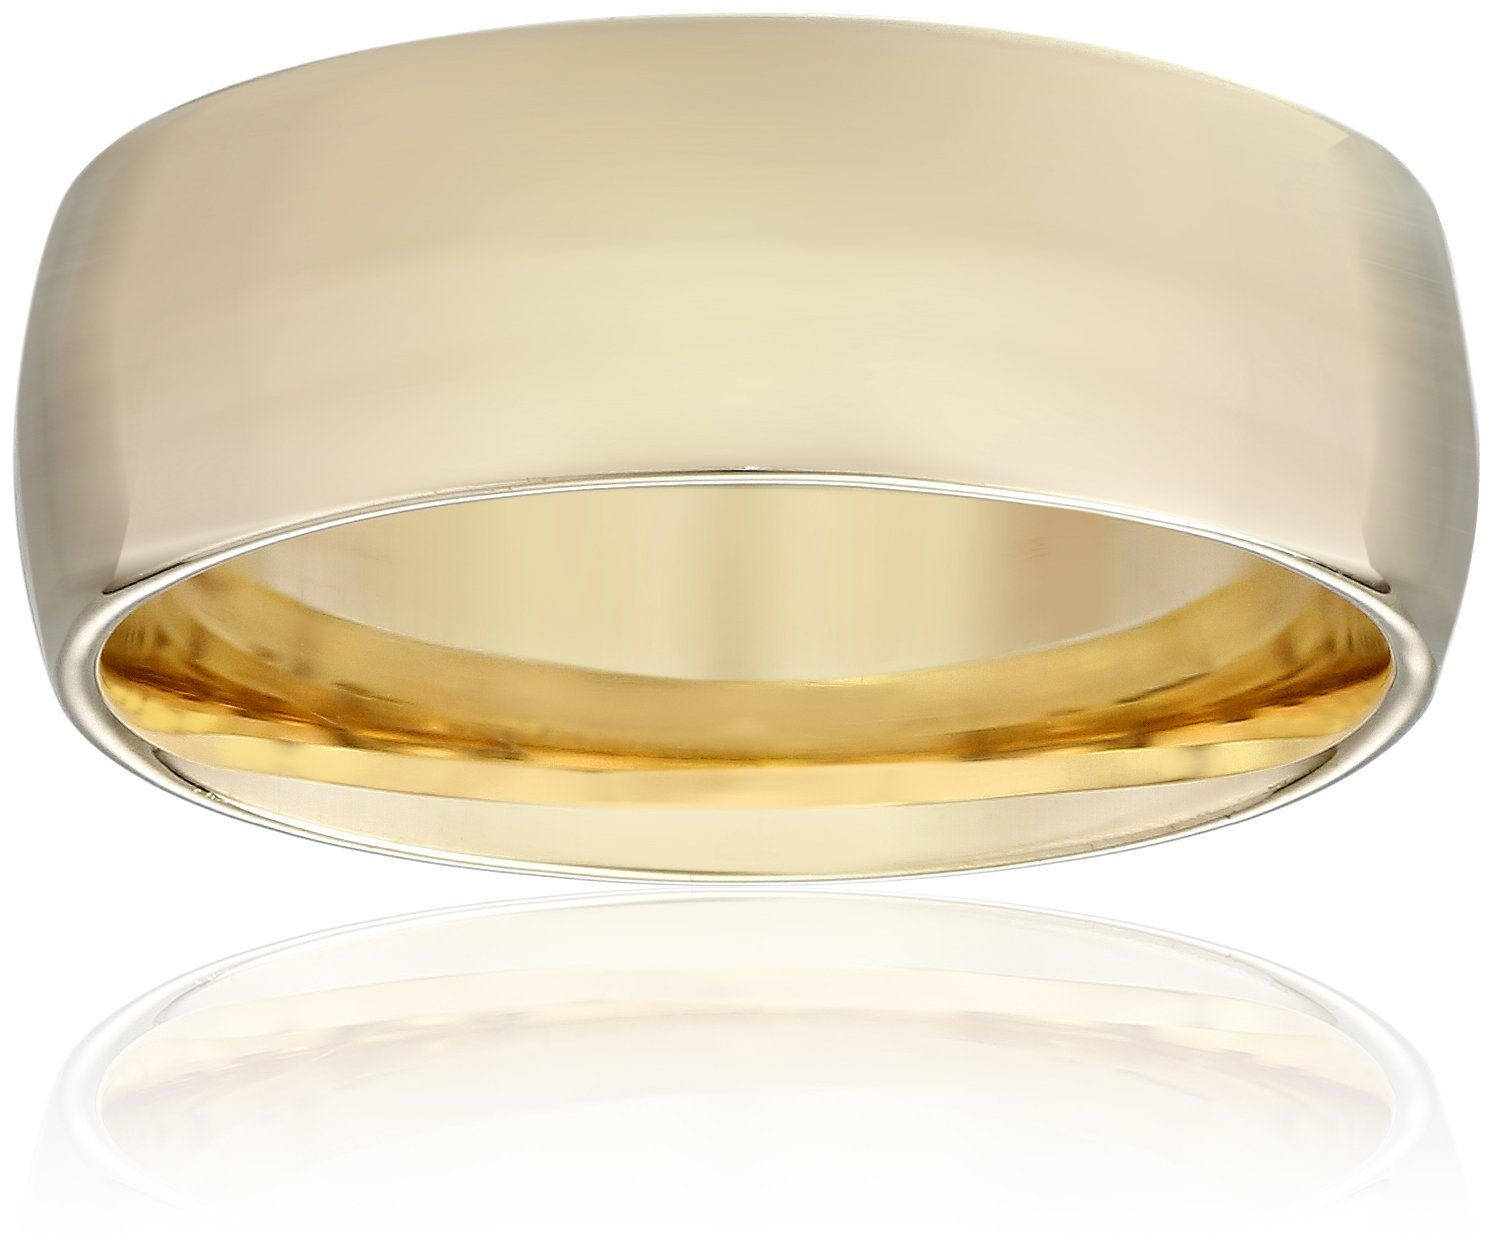 Standard Comfort-Fit 14K Yellow Gold Band, 8mm, Size 11.5